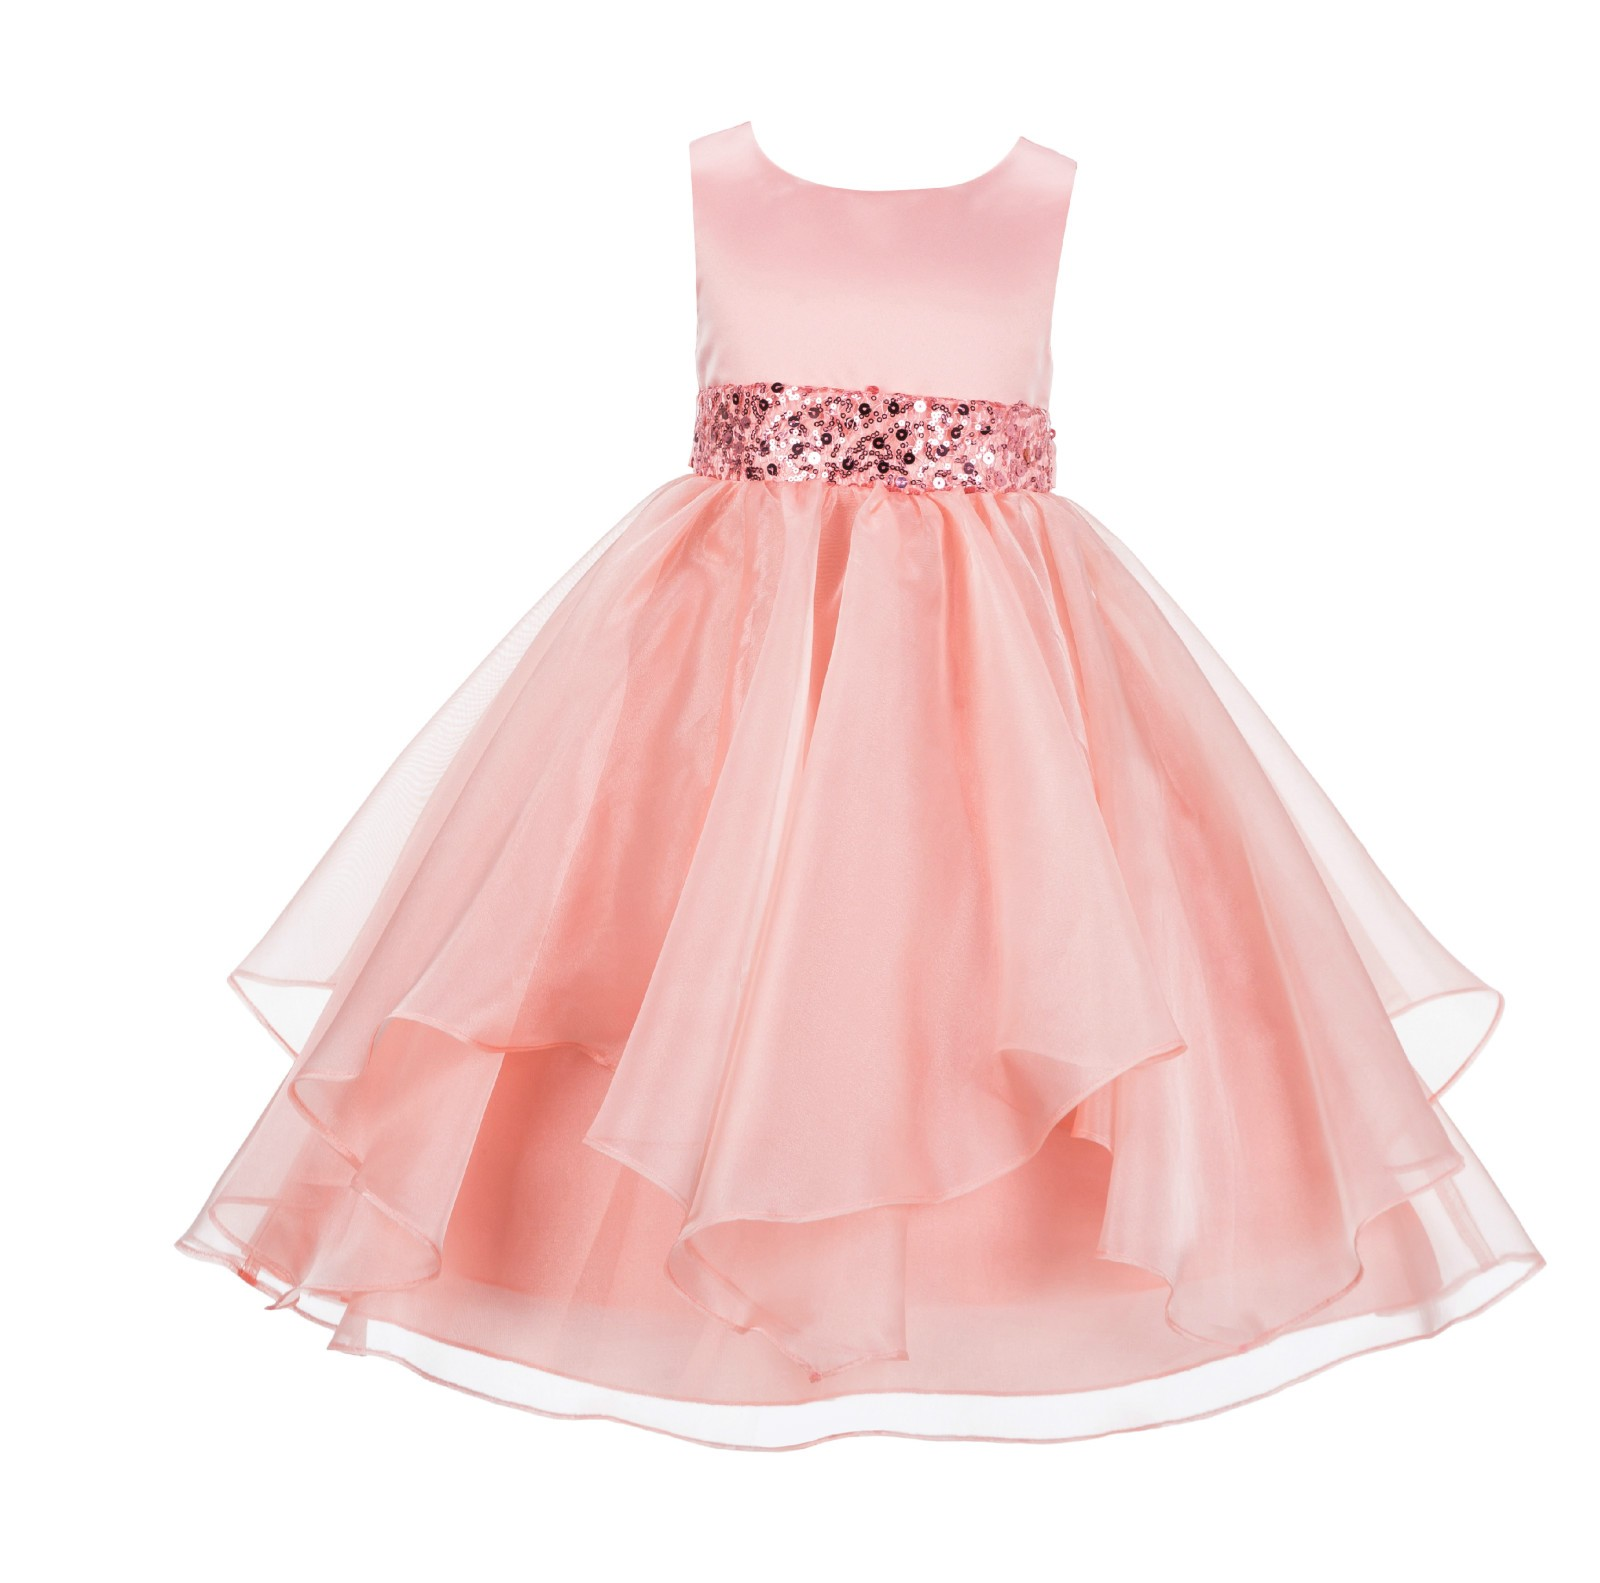 Peach Asymmetric Ruffled Organza Sequin Flower Girl Dress 012S